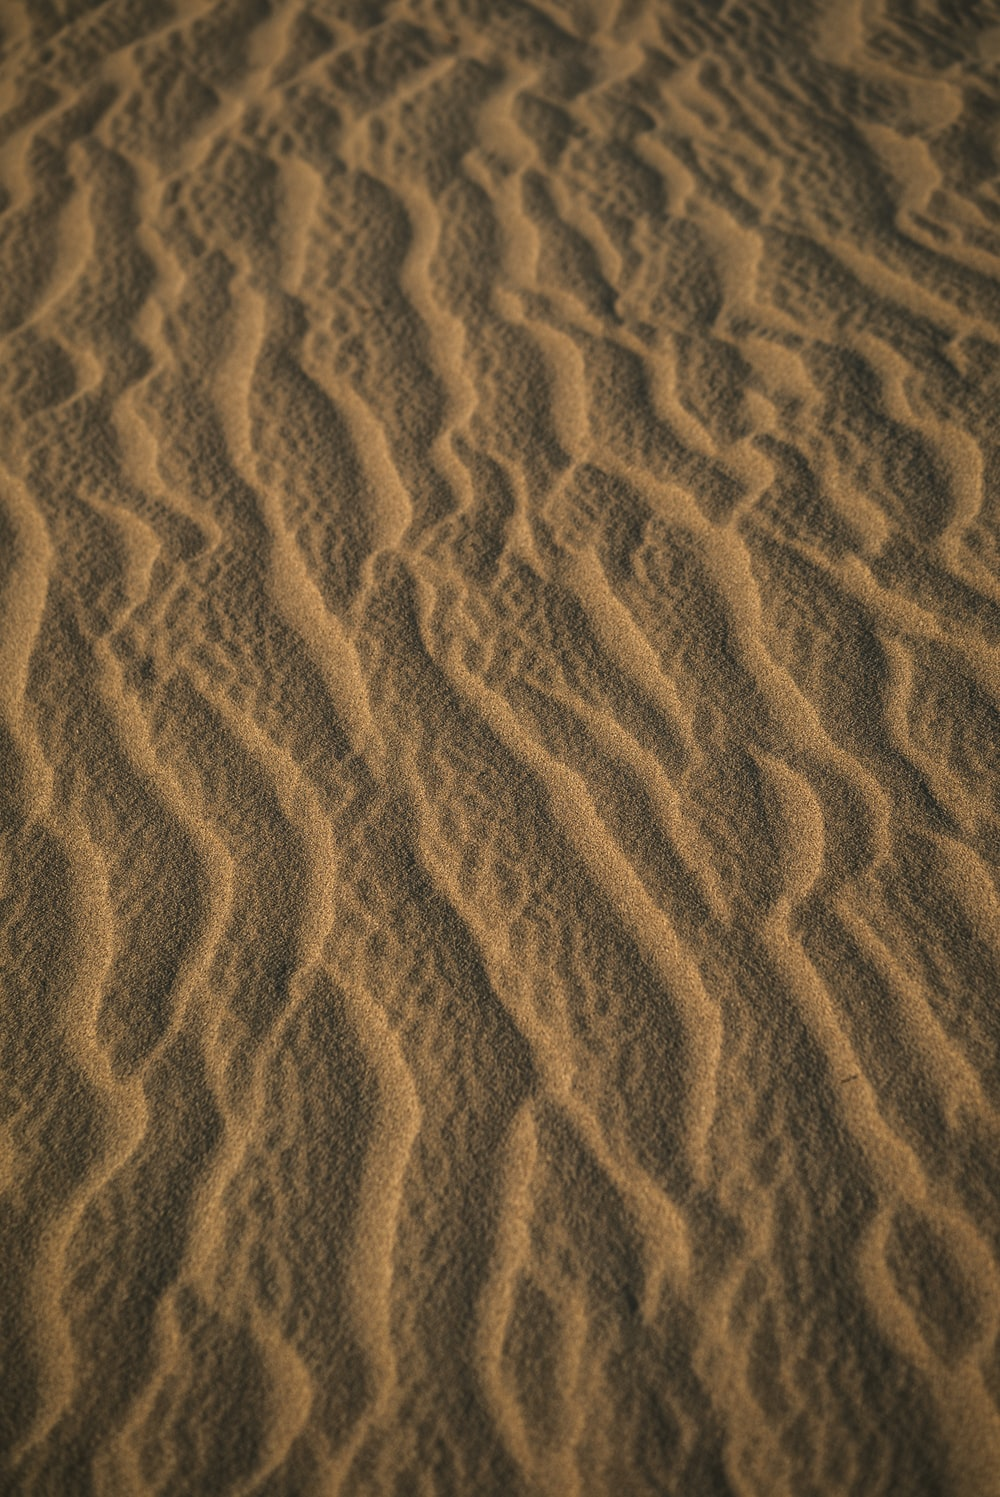 brown sand with shadow of person